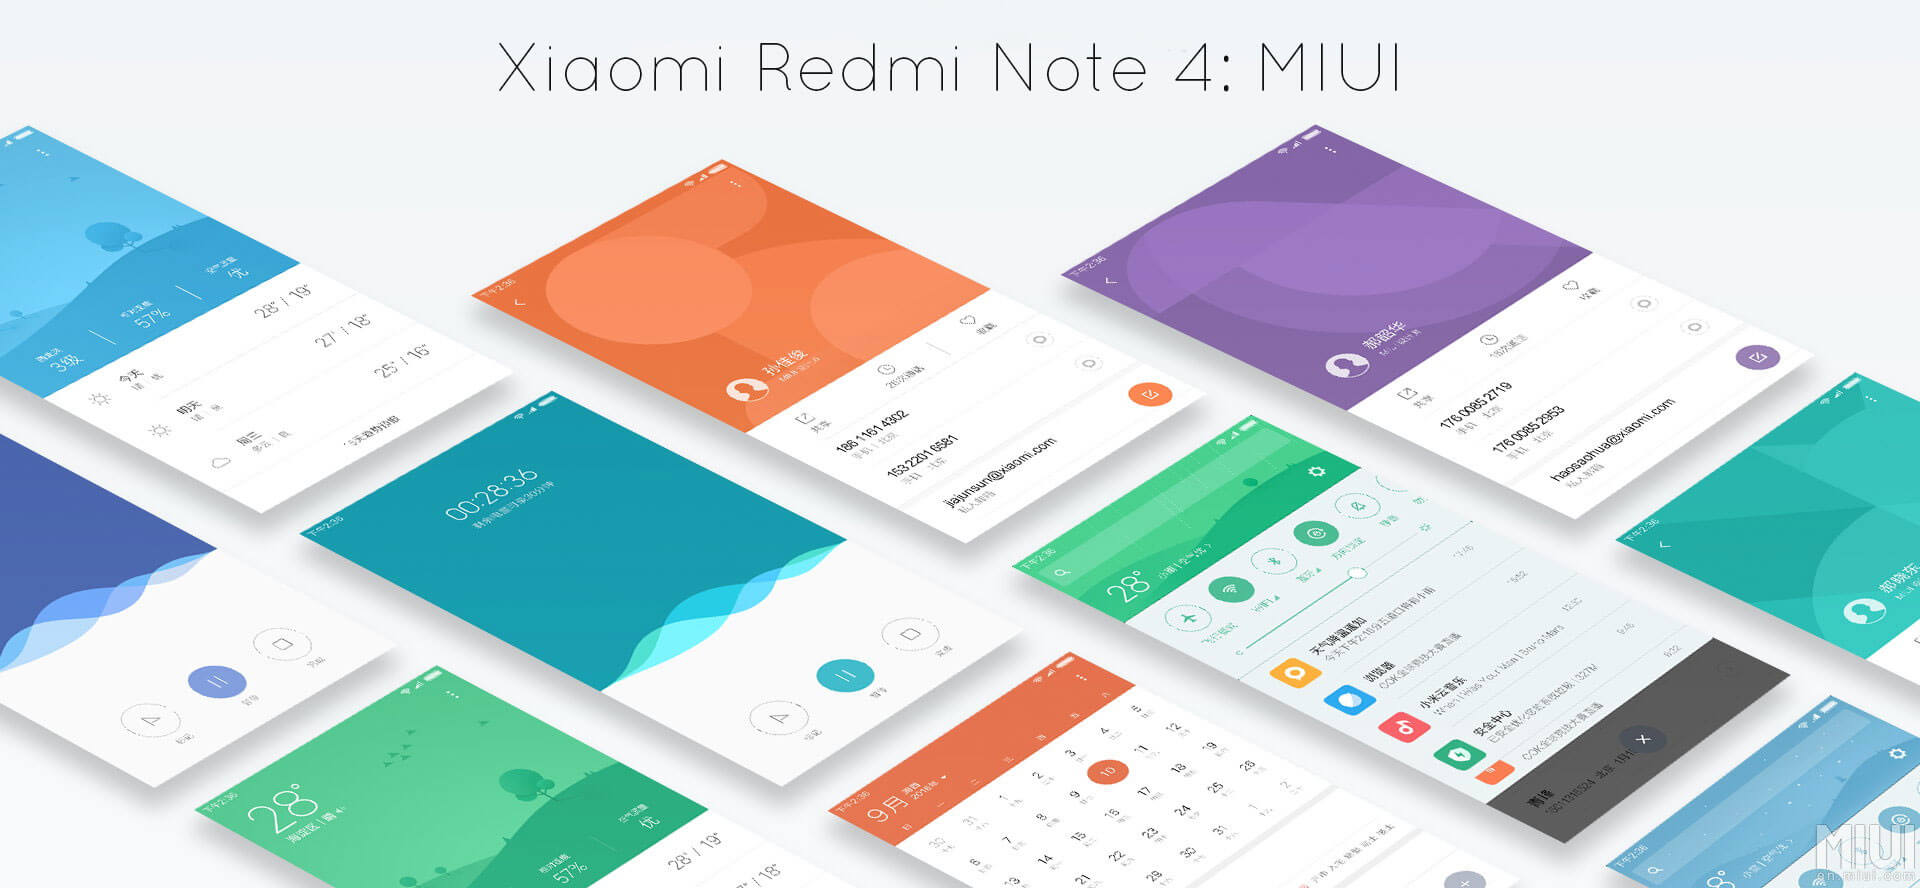 Xiaomi Redmi Note 4 review: Never run out of battery & Performance.